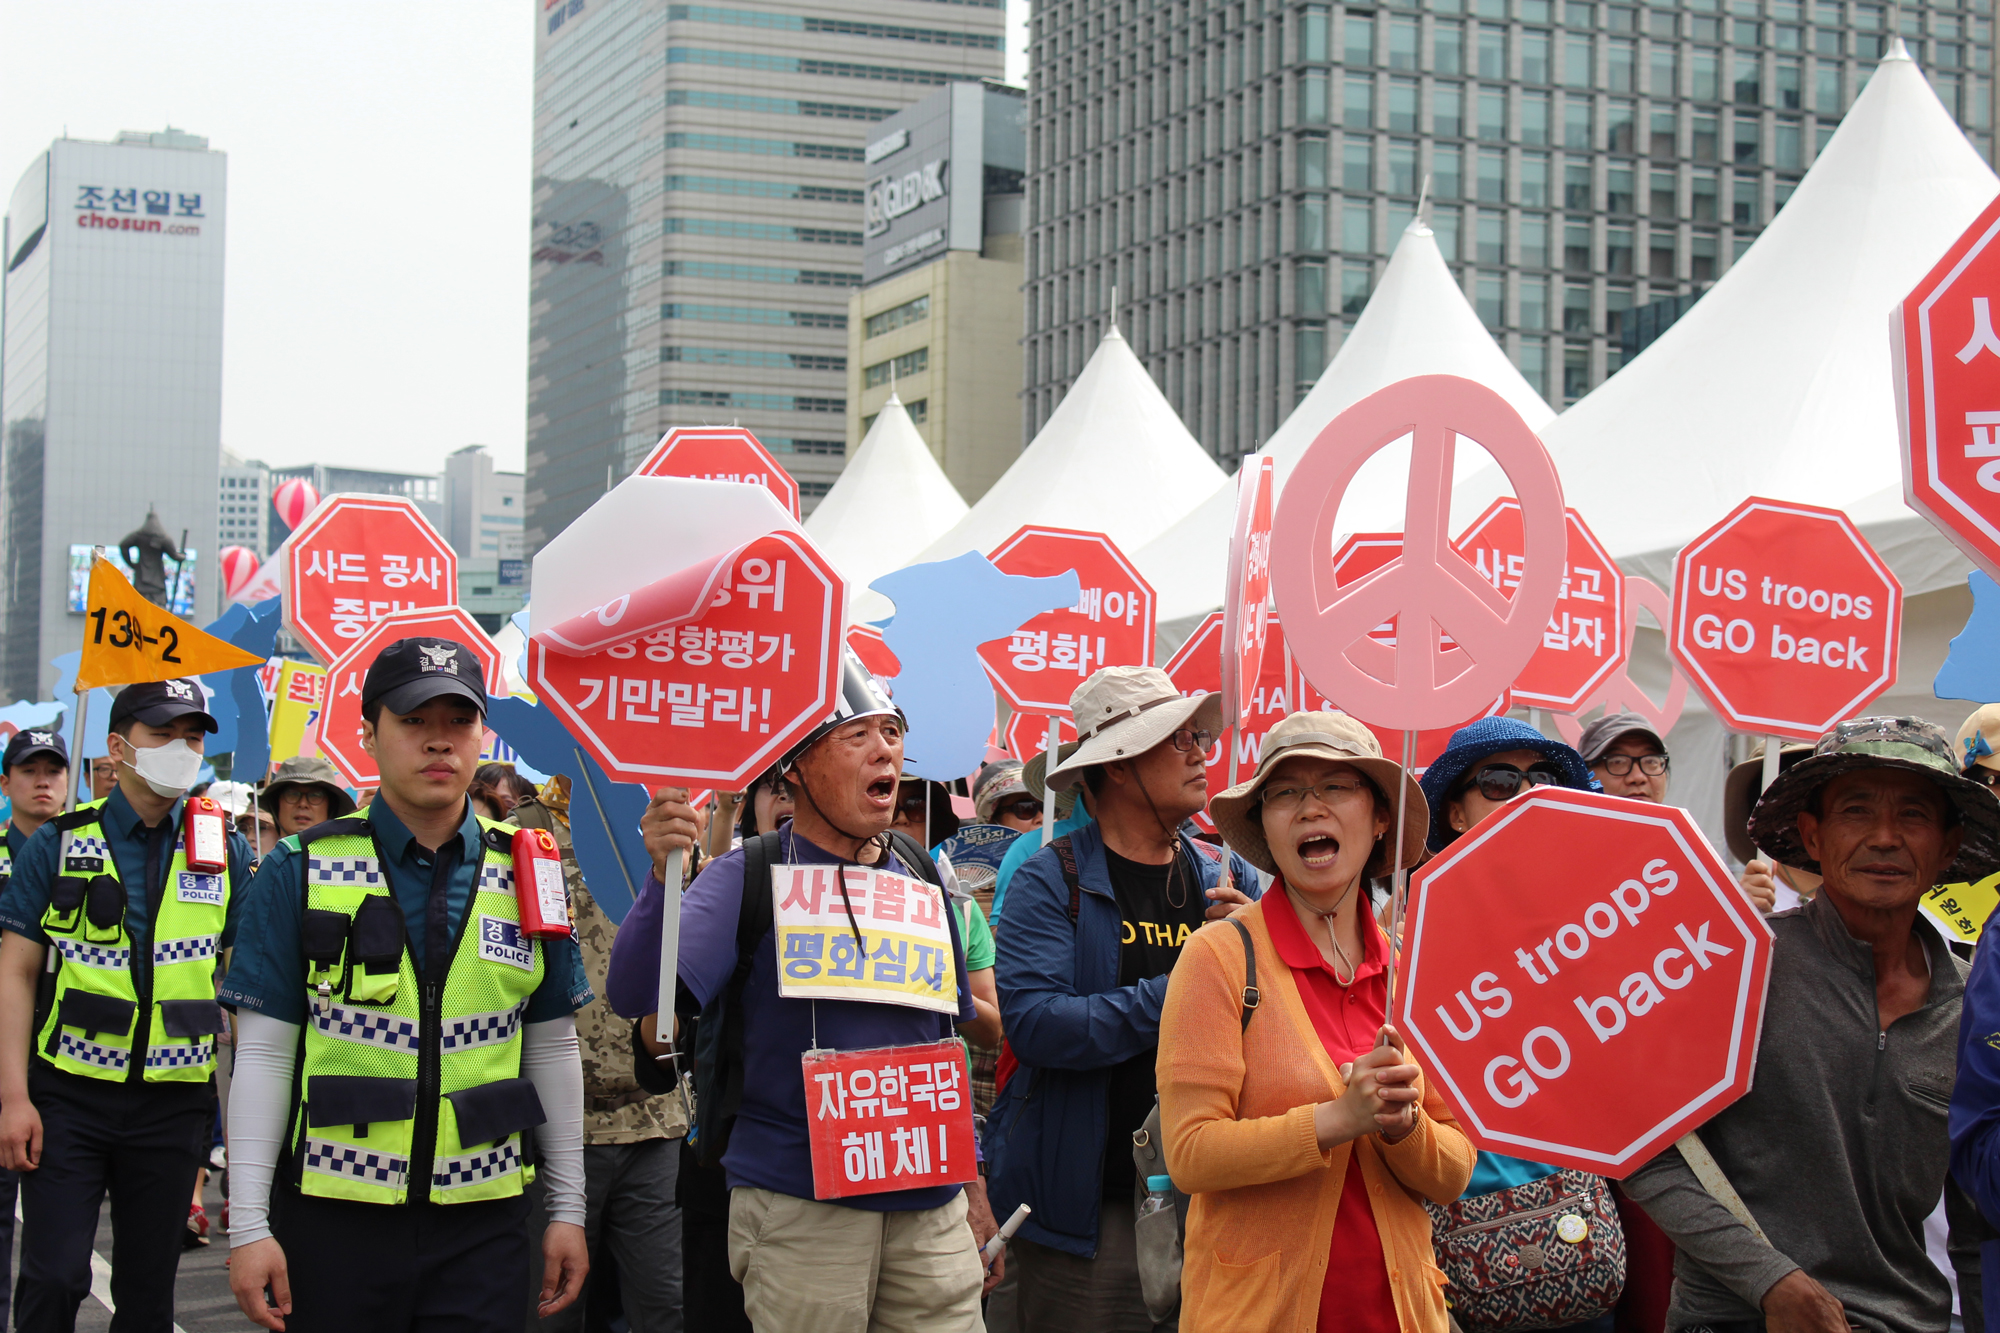 South Korean protestors calling for further engagement between the U.S. and North Korea march through Seoul on June 1, 2019. Several demonstrators hold up signs calling for a withdrawal of U.S. troops from South Korea and the end of the United States' THAAD missile-countering program, which has been a point of tension between the two Koreas, China and the United States. (Photo by Kelly Kasulis/GroundTruth)